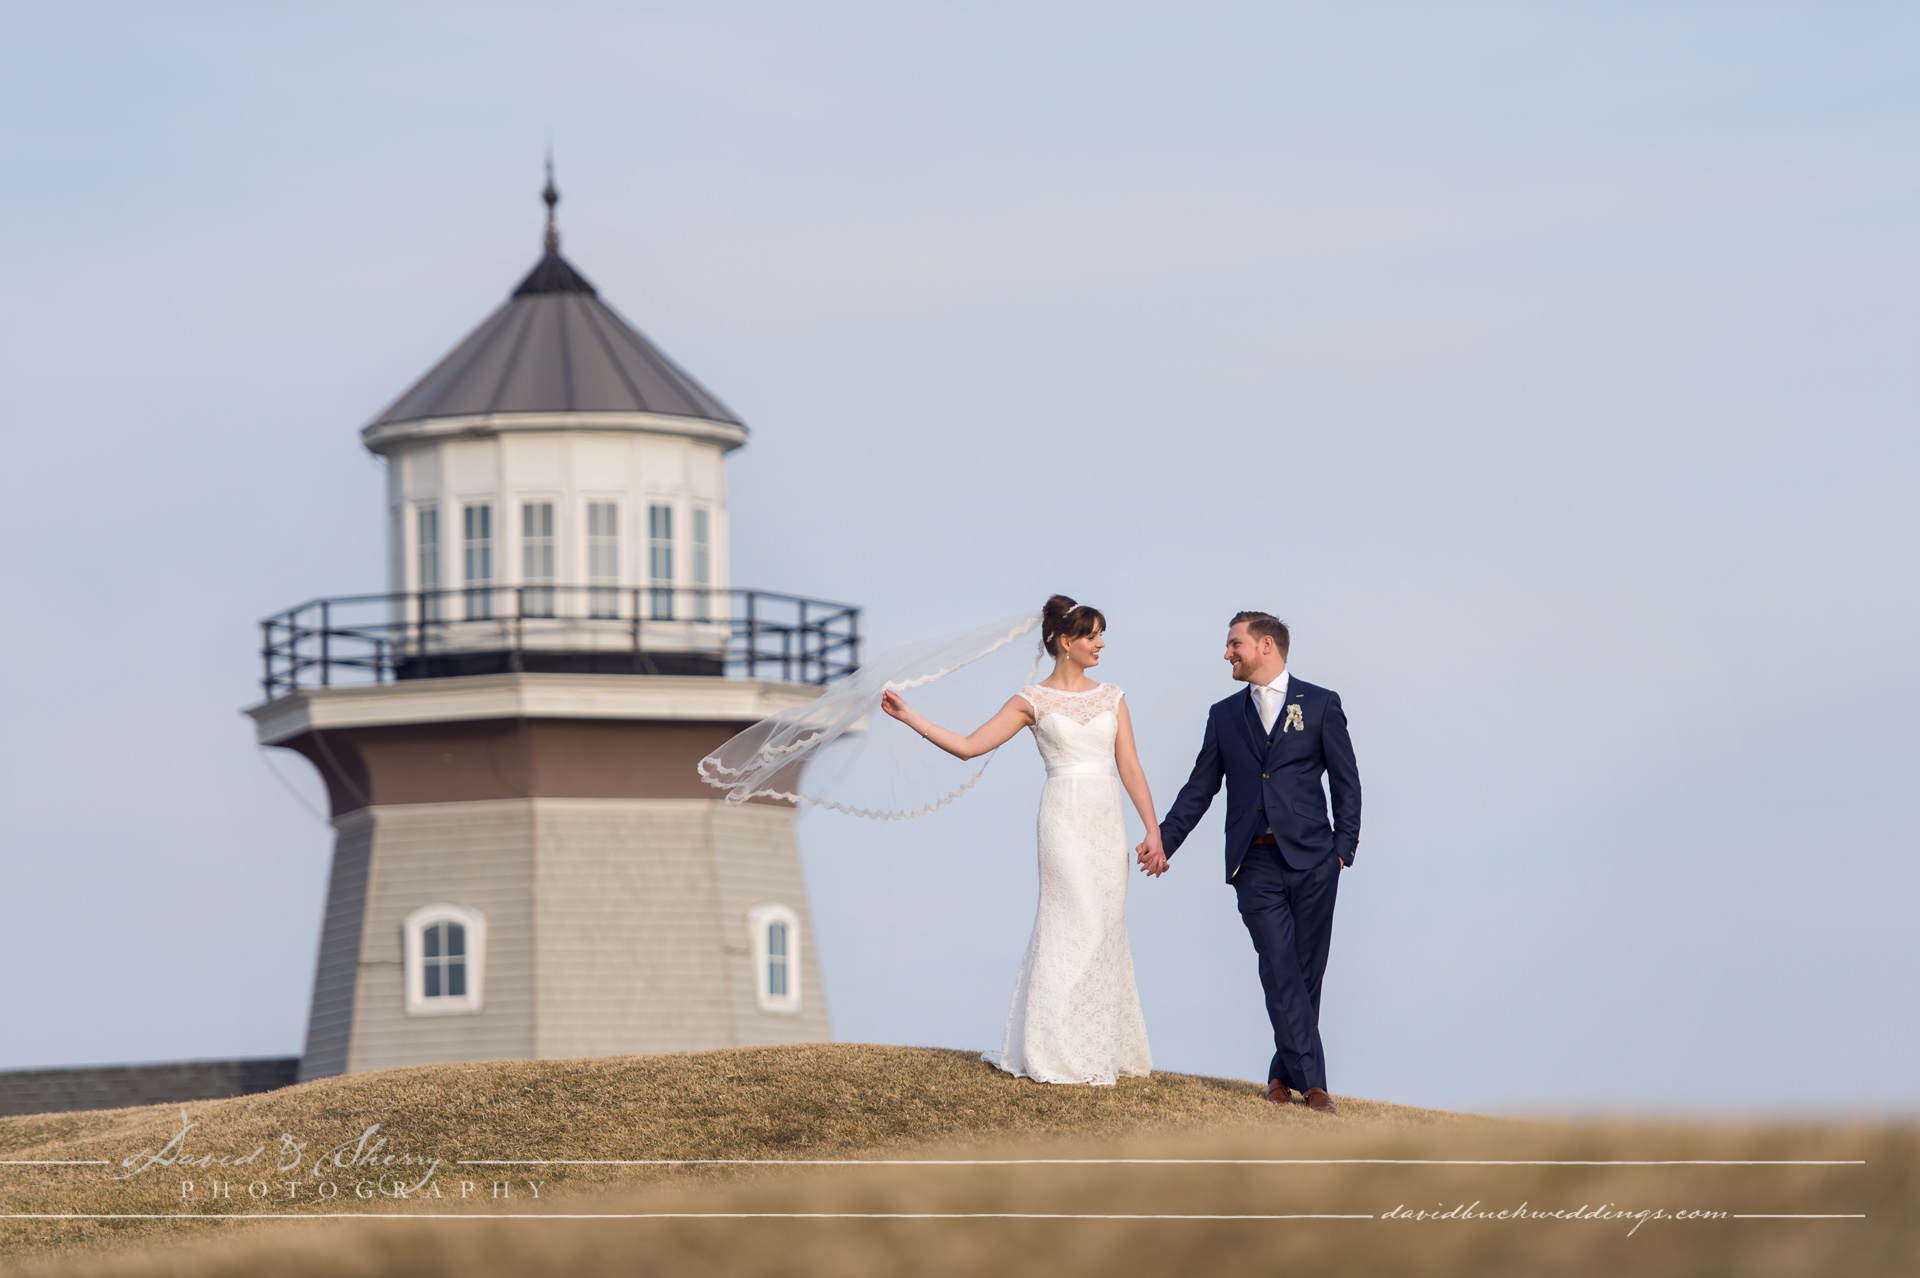 Wedding Lighthouse Pictures Cobble Beach